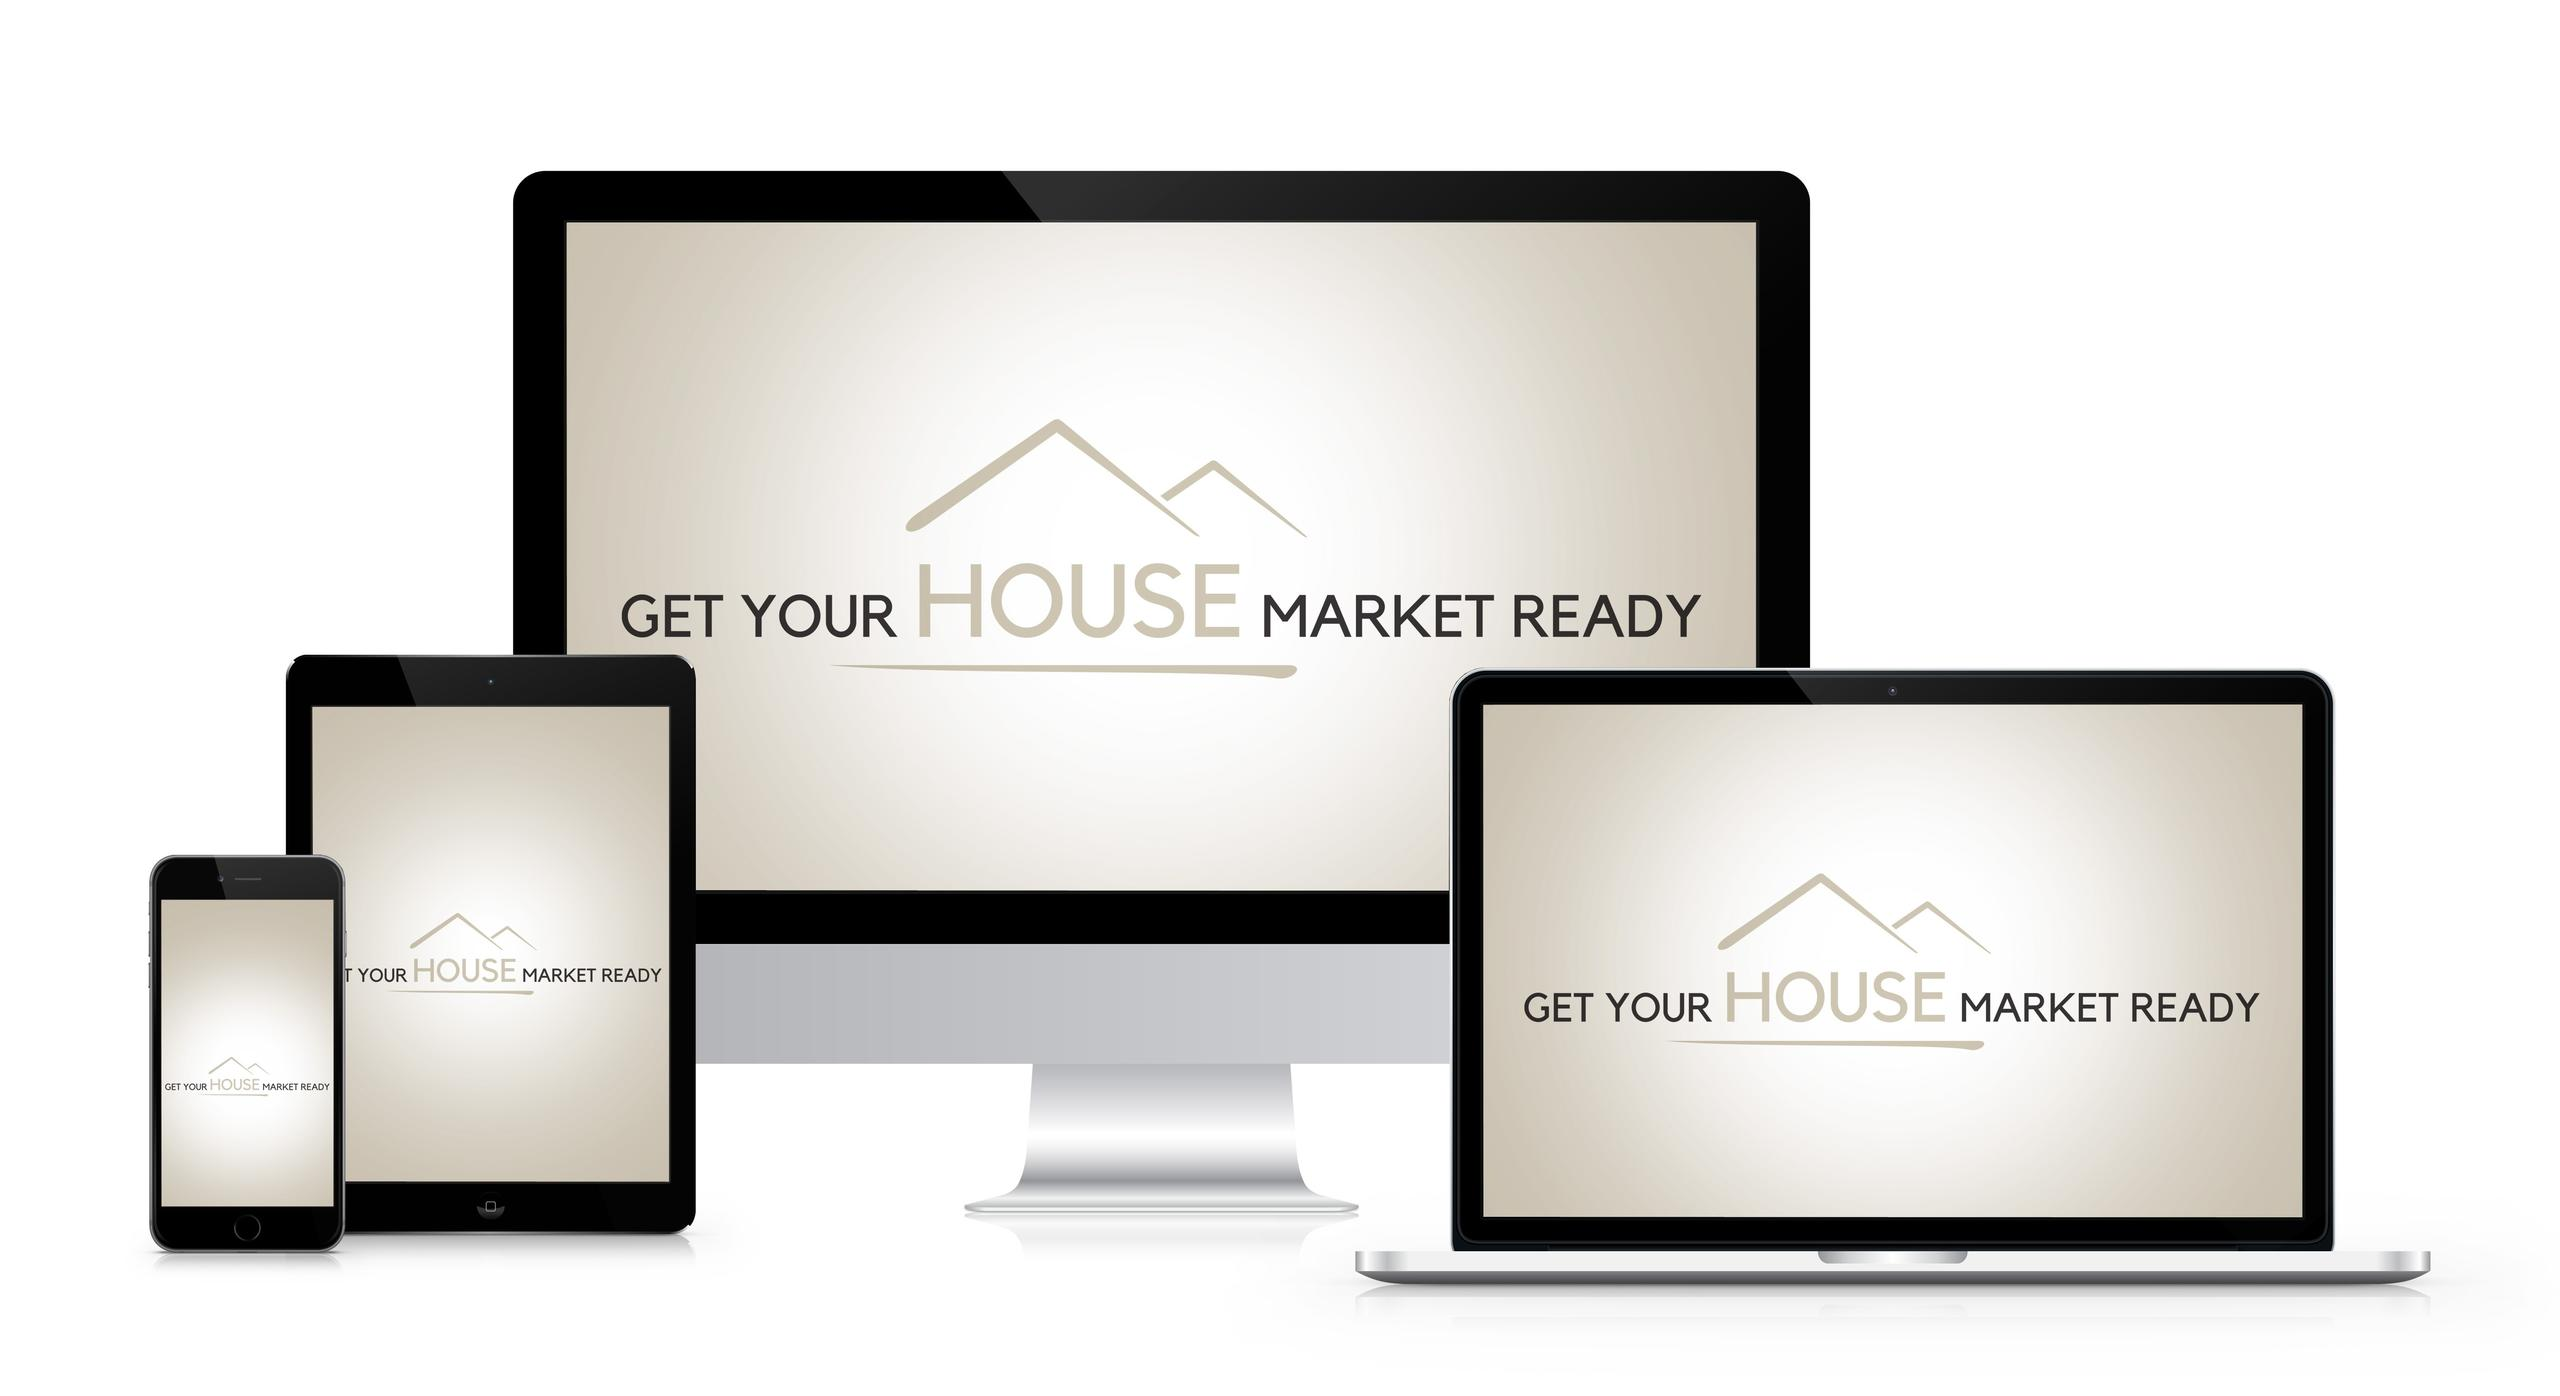 Get Your House Market Ready